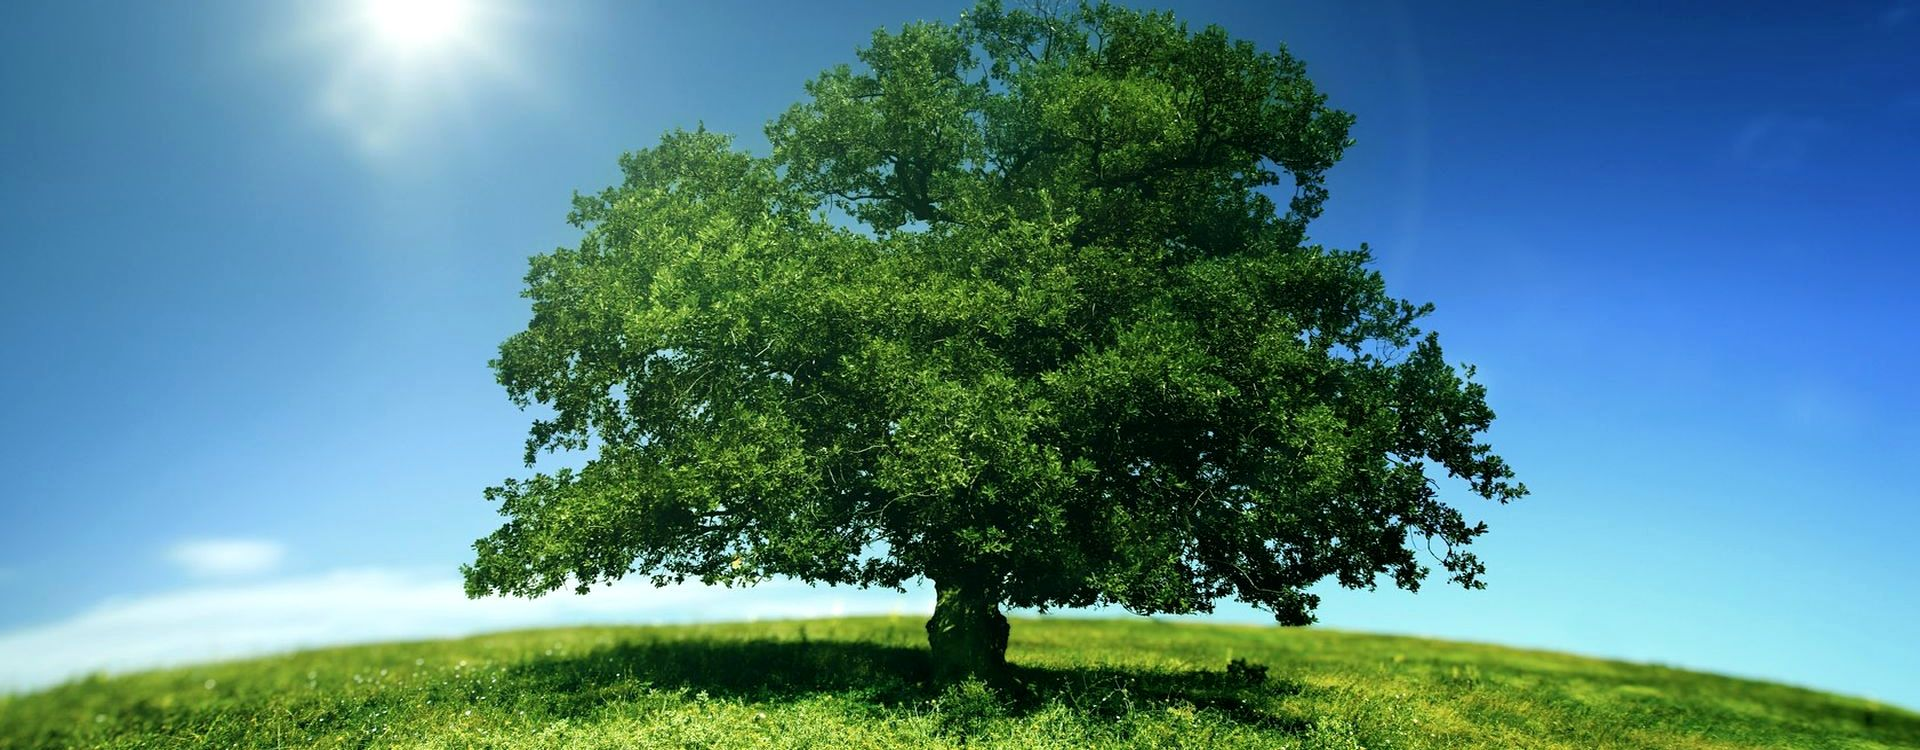 big-green-tree-on-sun-nature-wallpapers-1920x1080